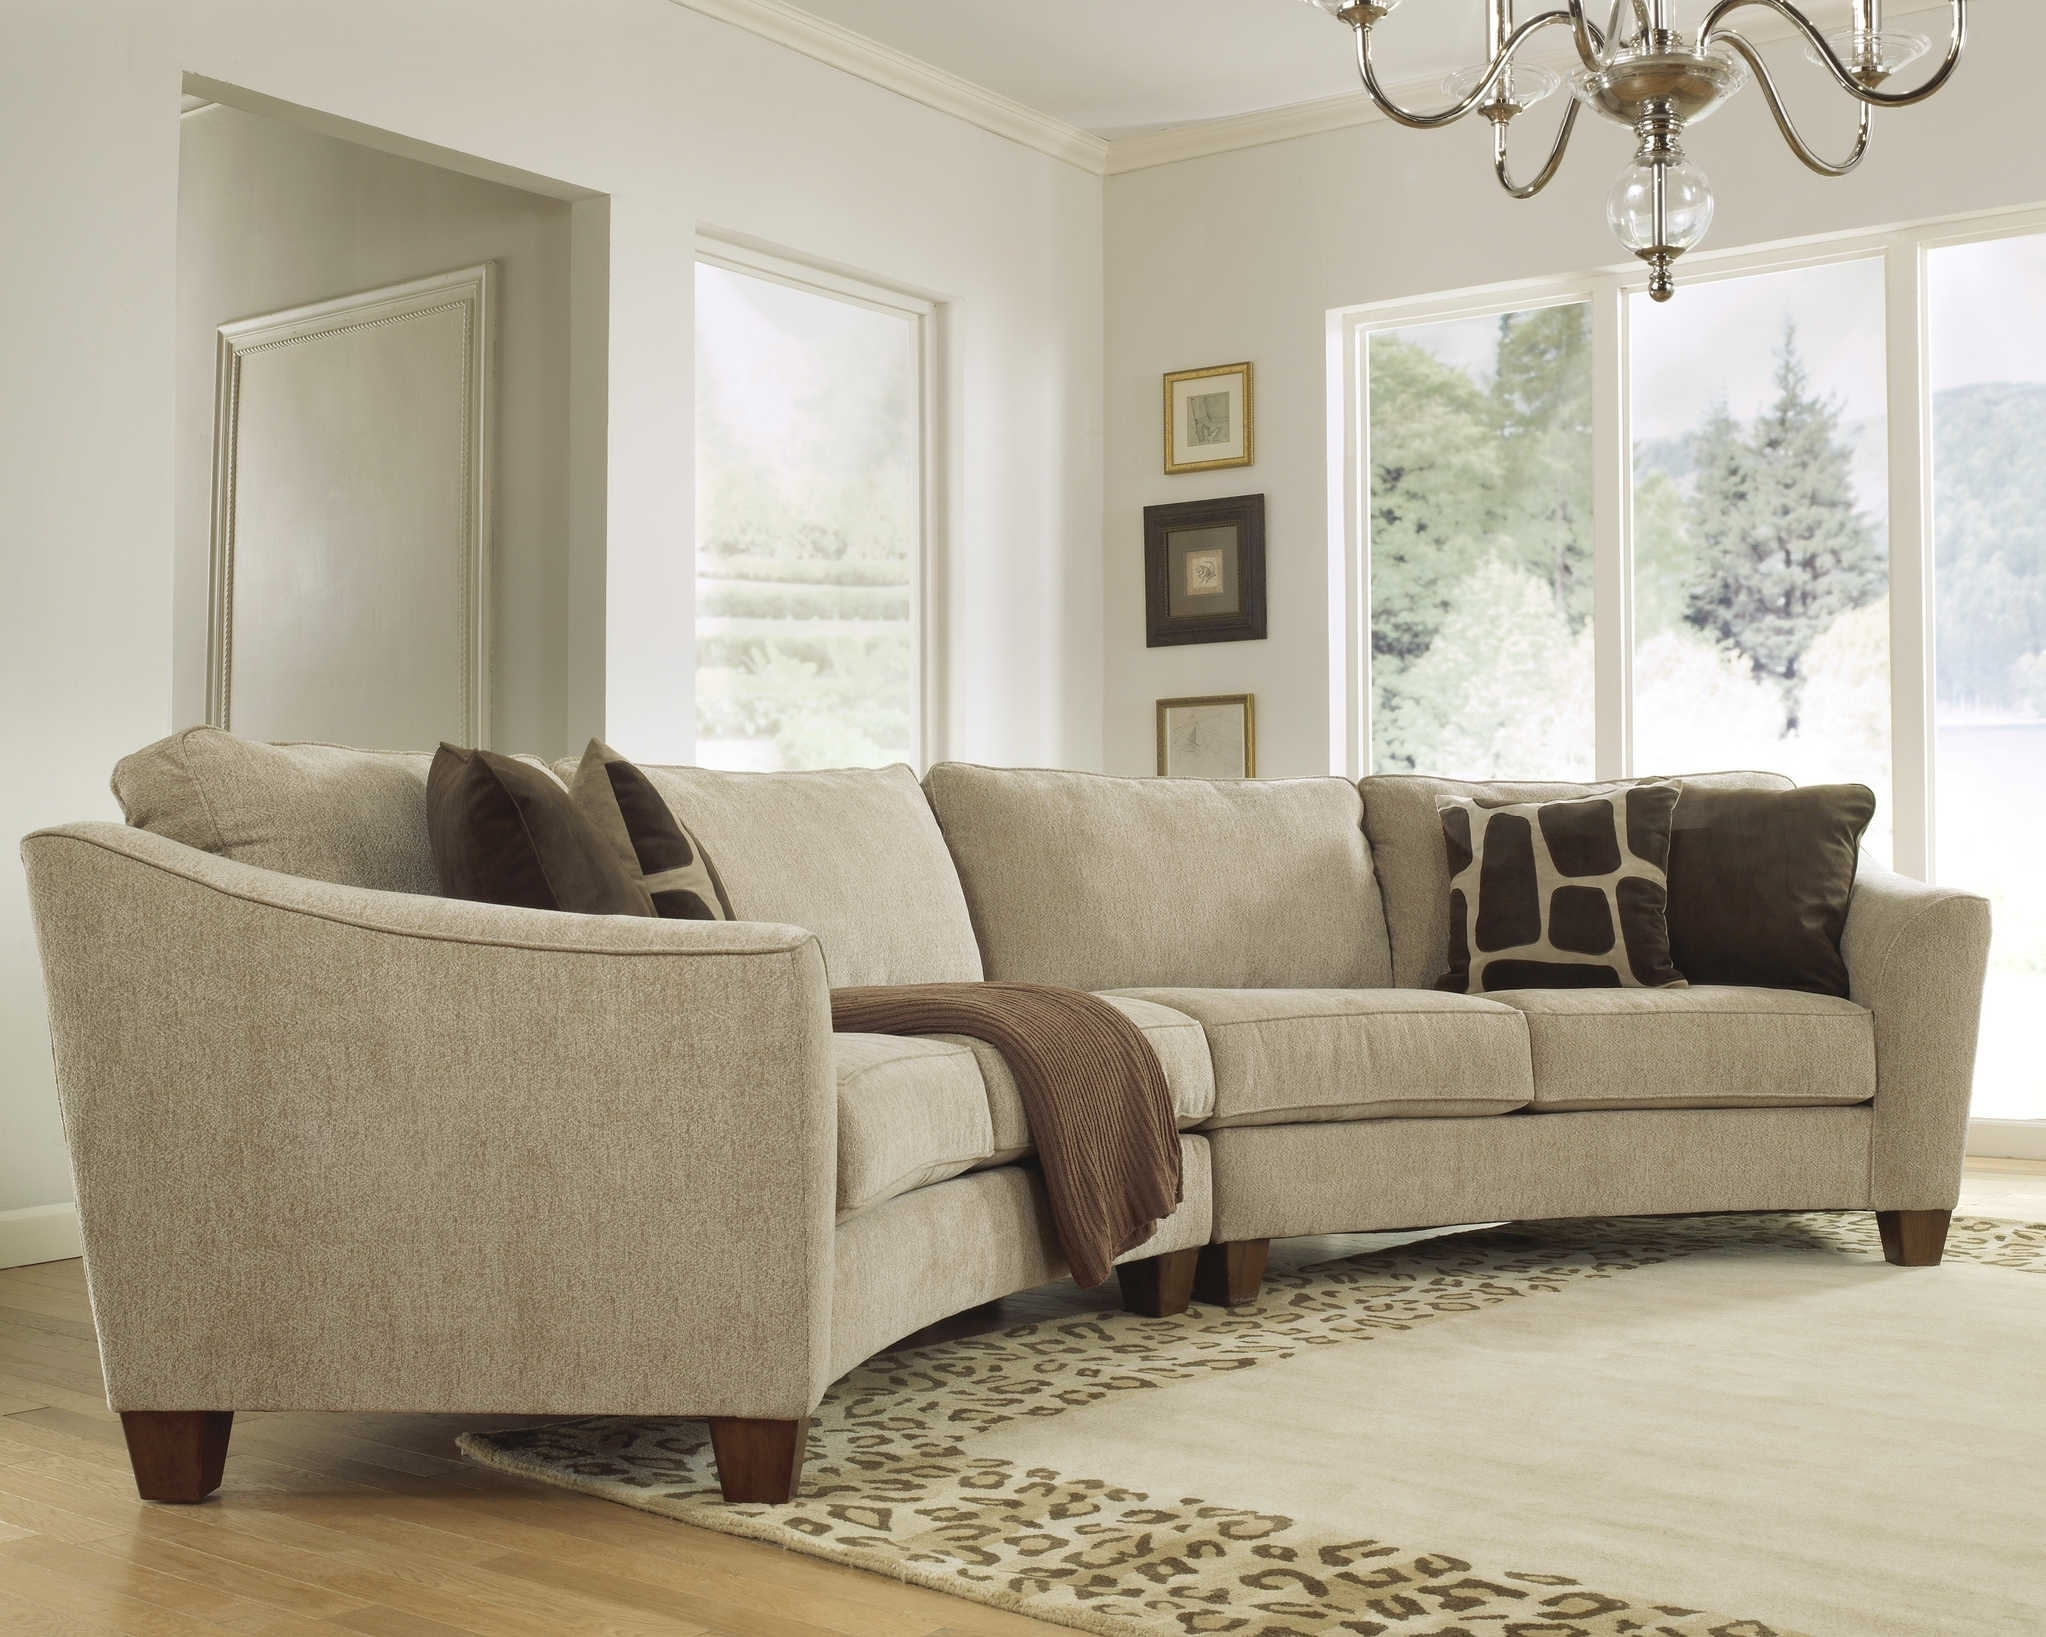 Curved Sofa Ashley Furniture – Best Sectional Sofa Ideas Throughout Wichita Ks Sectional Sofas (Image 7 of 10)